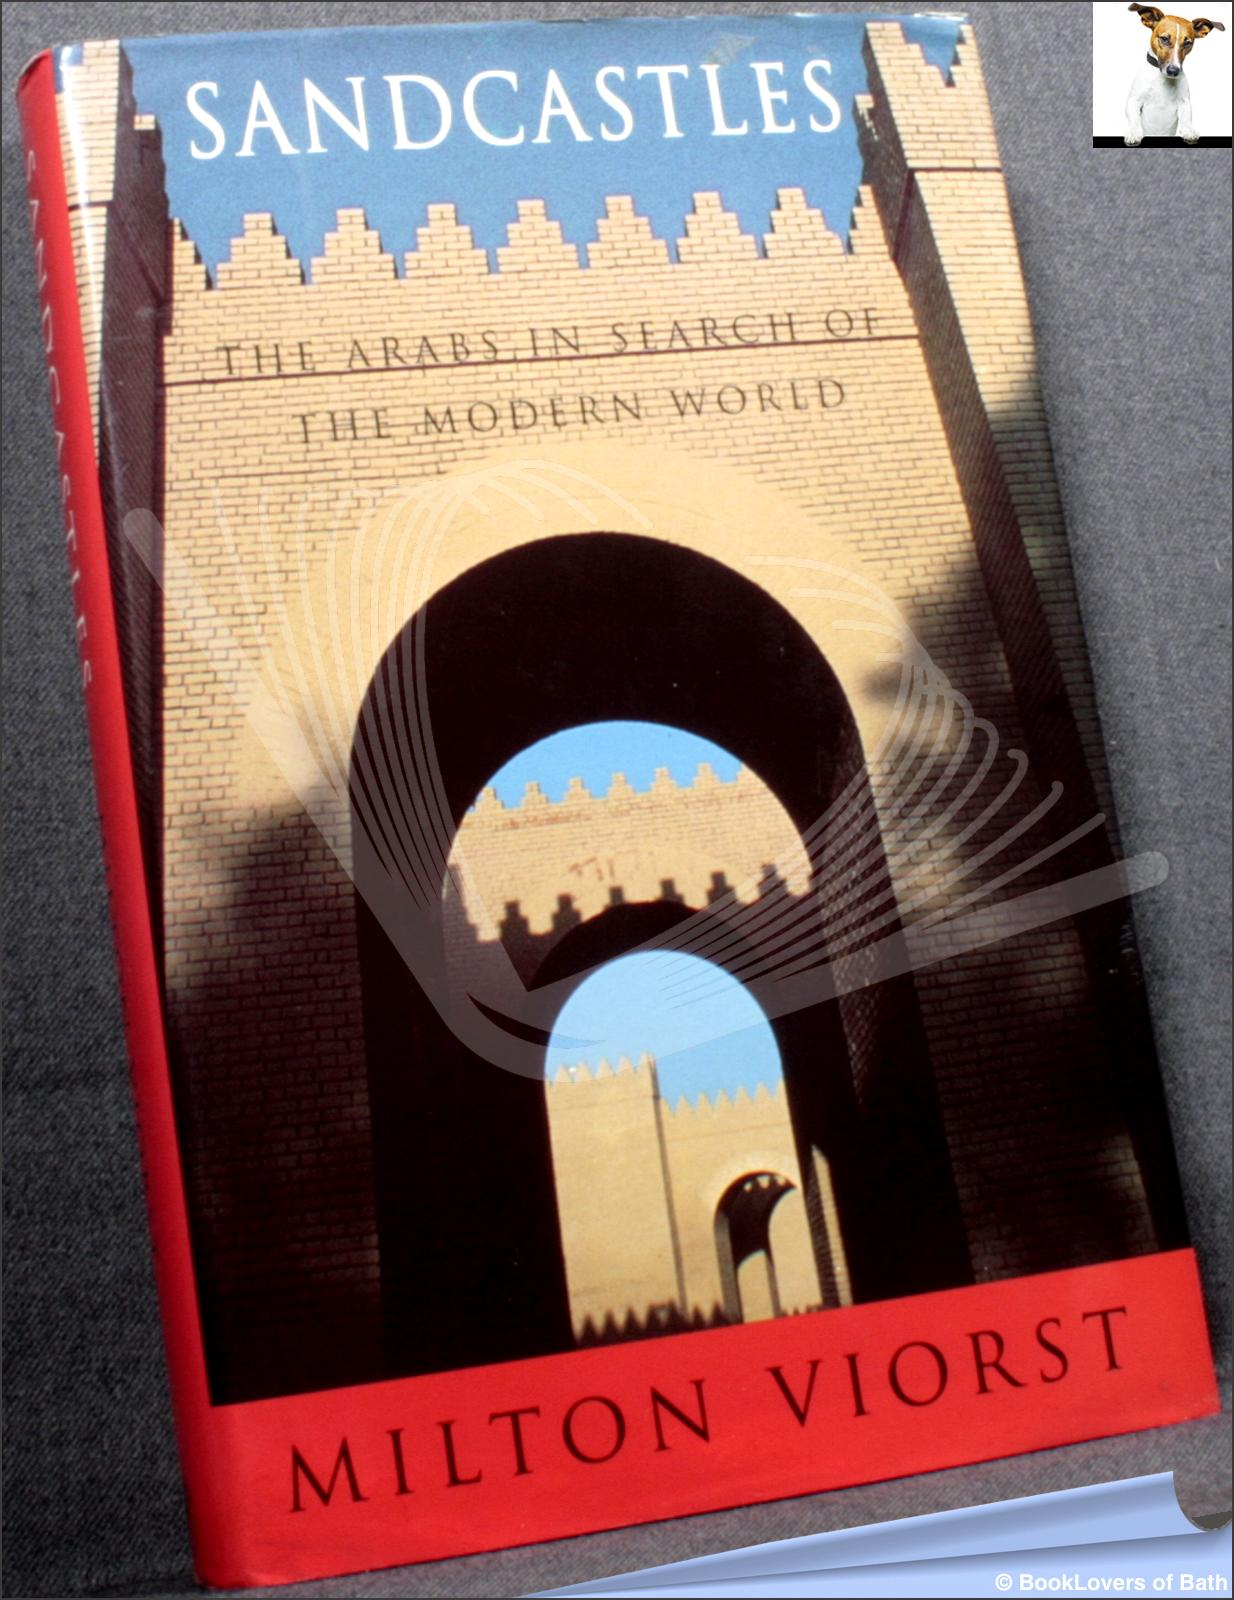 Sandcastles: The Arabs In Search Of The Modern World - Milton Viorst